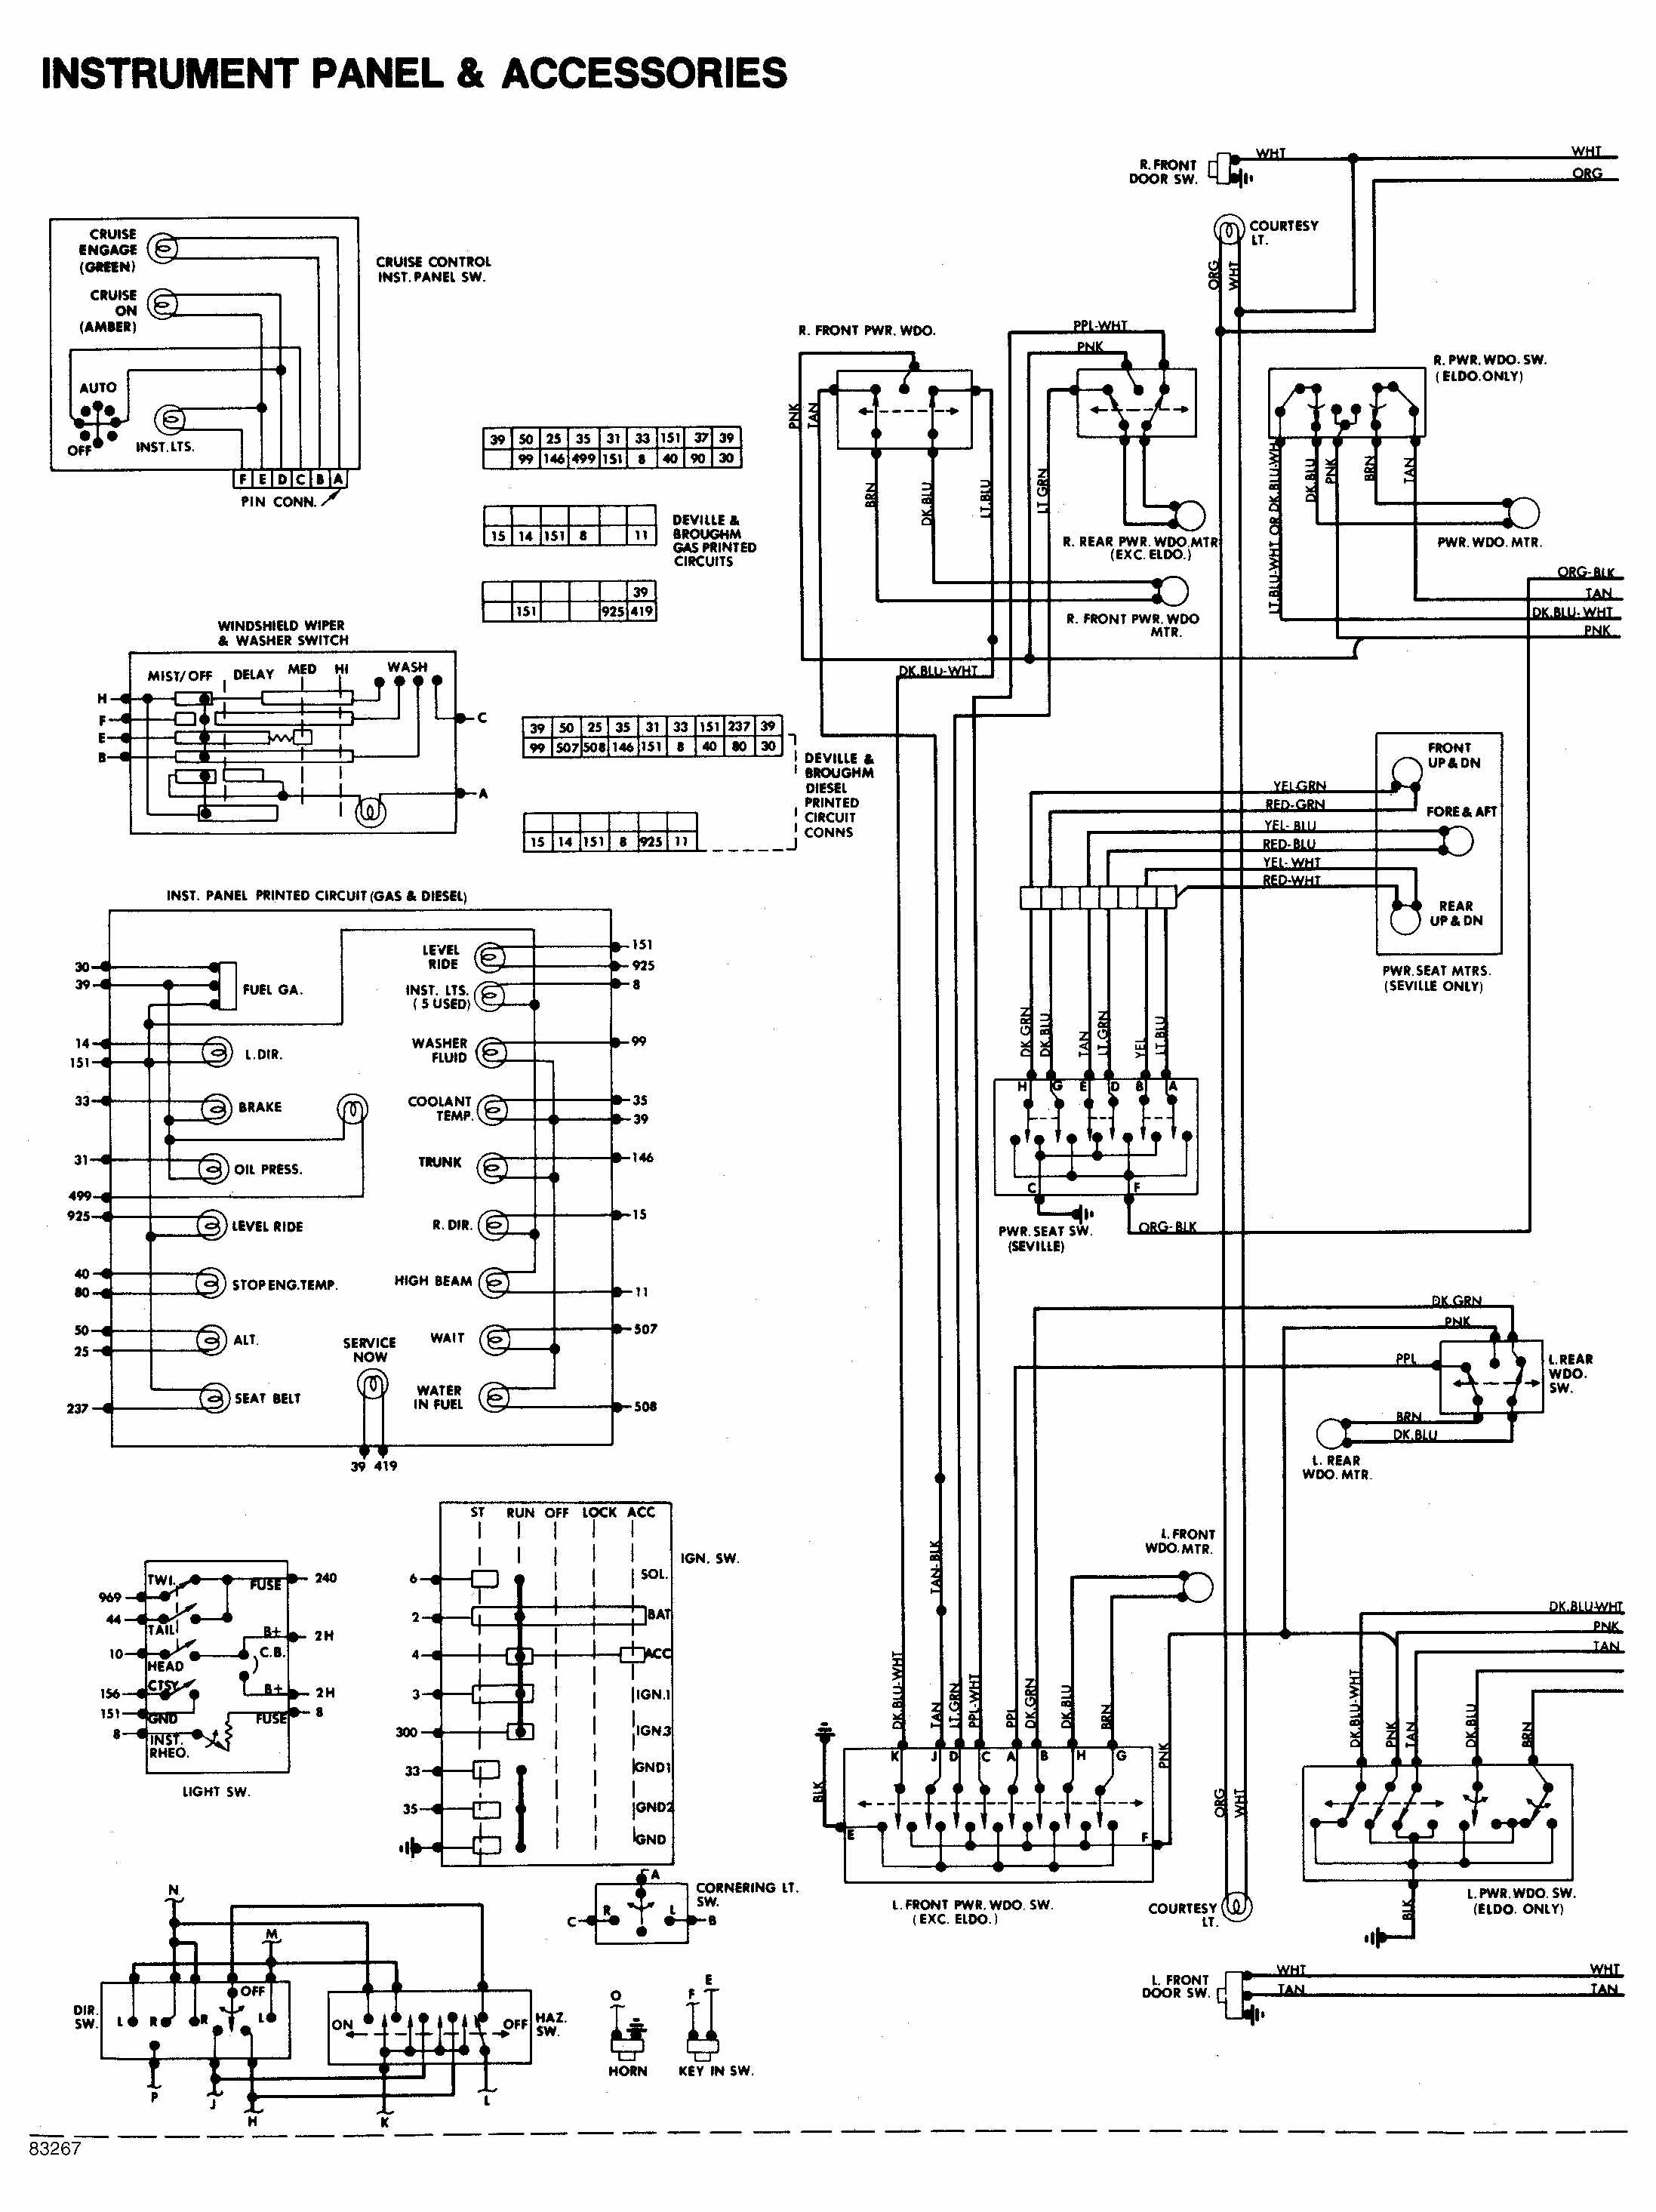 instrument panel and accessories wiring diagram of 1984 cadillac deville chevy diagrams 1999 cadillac deville wiring diagram at readyjetset.co